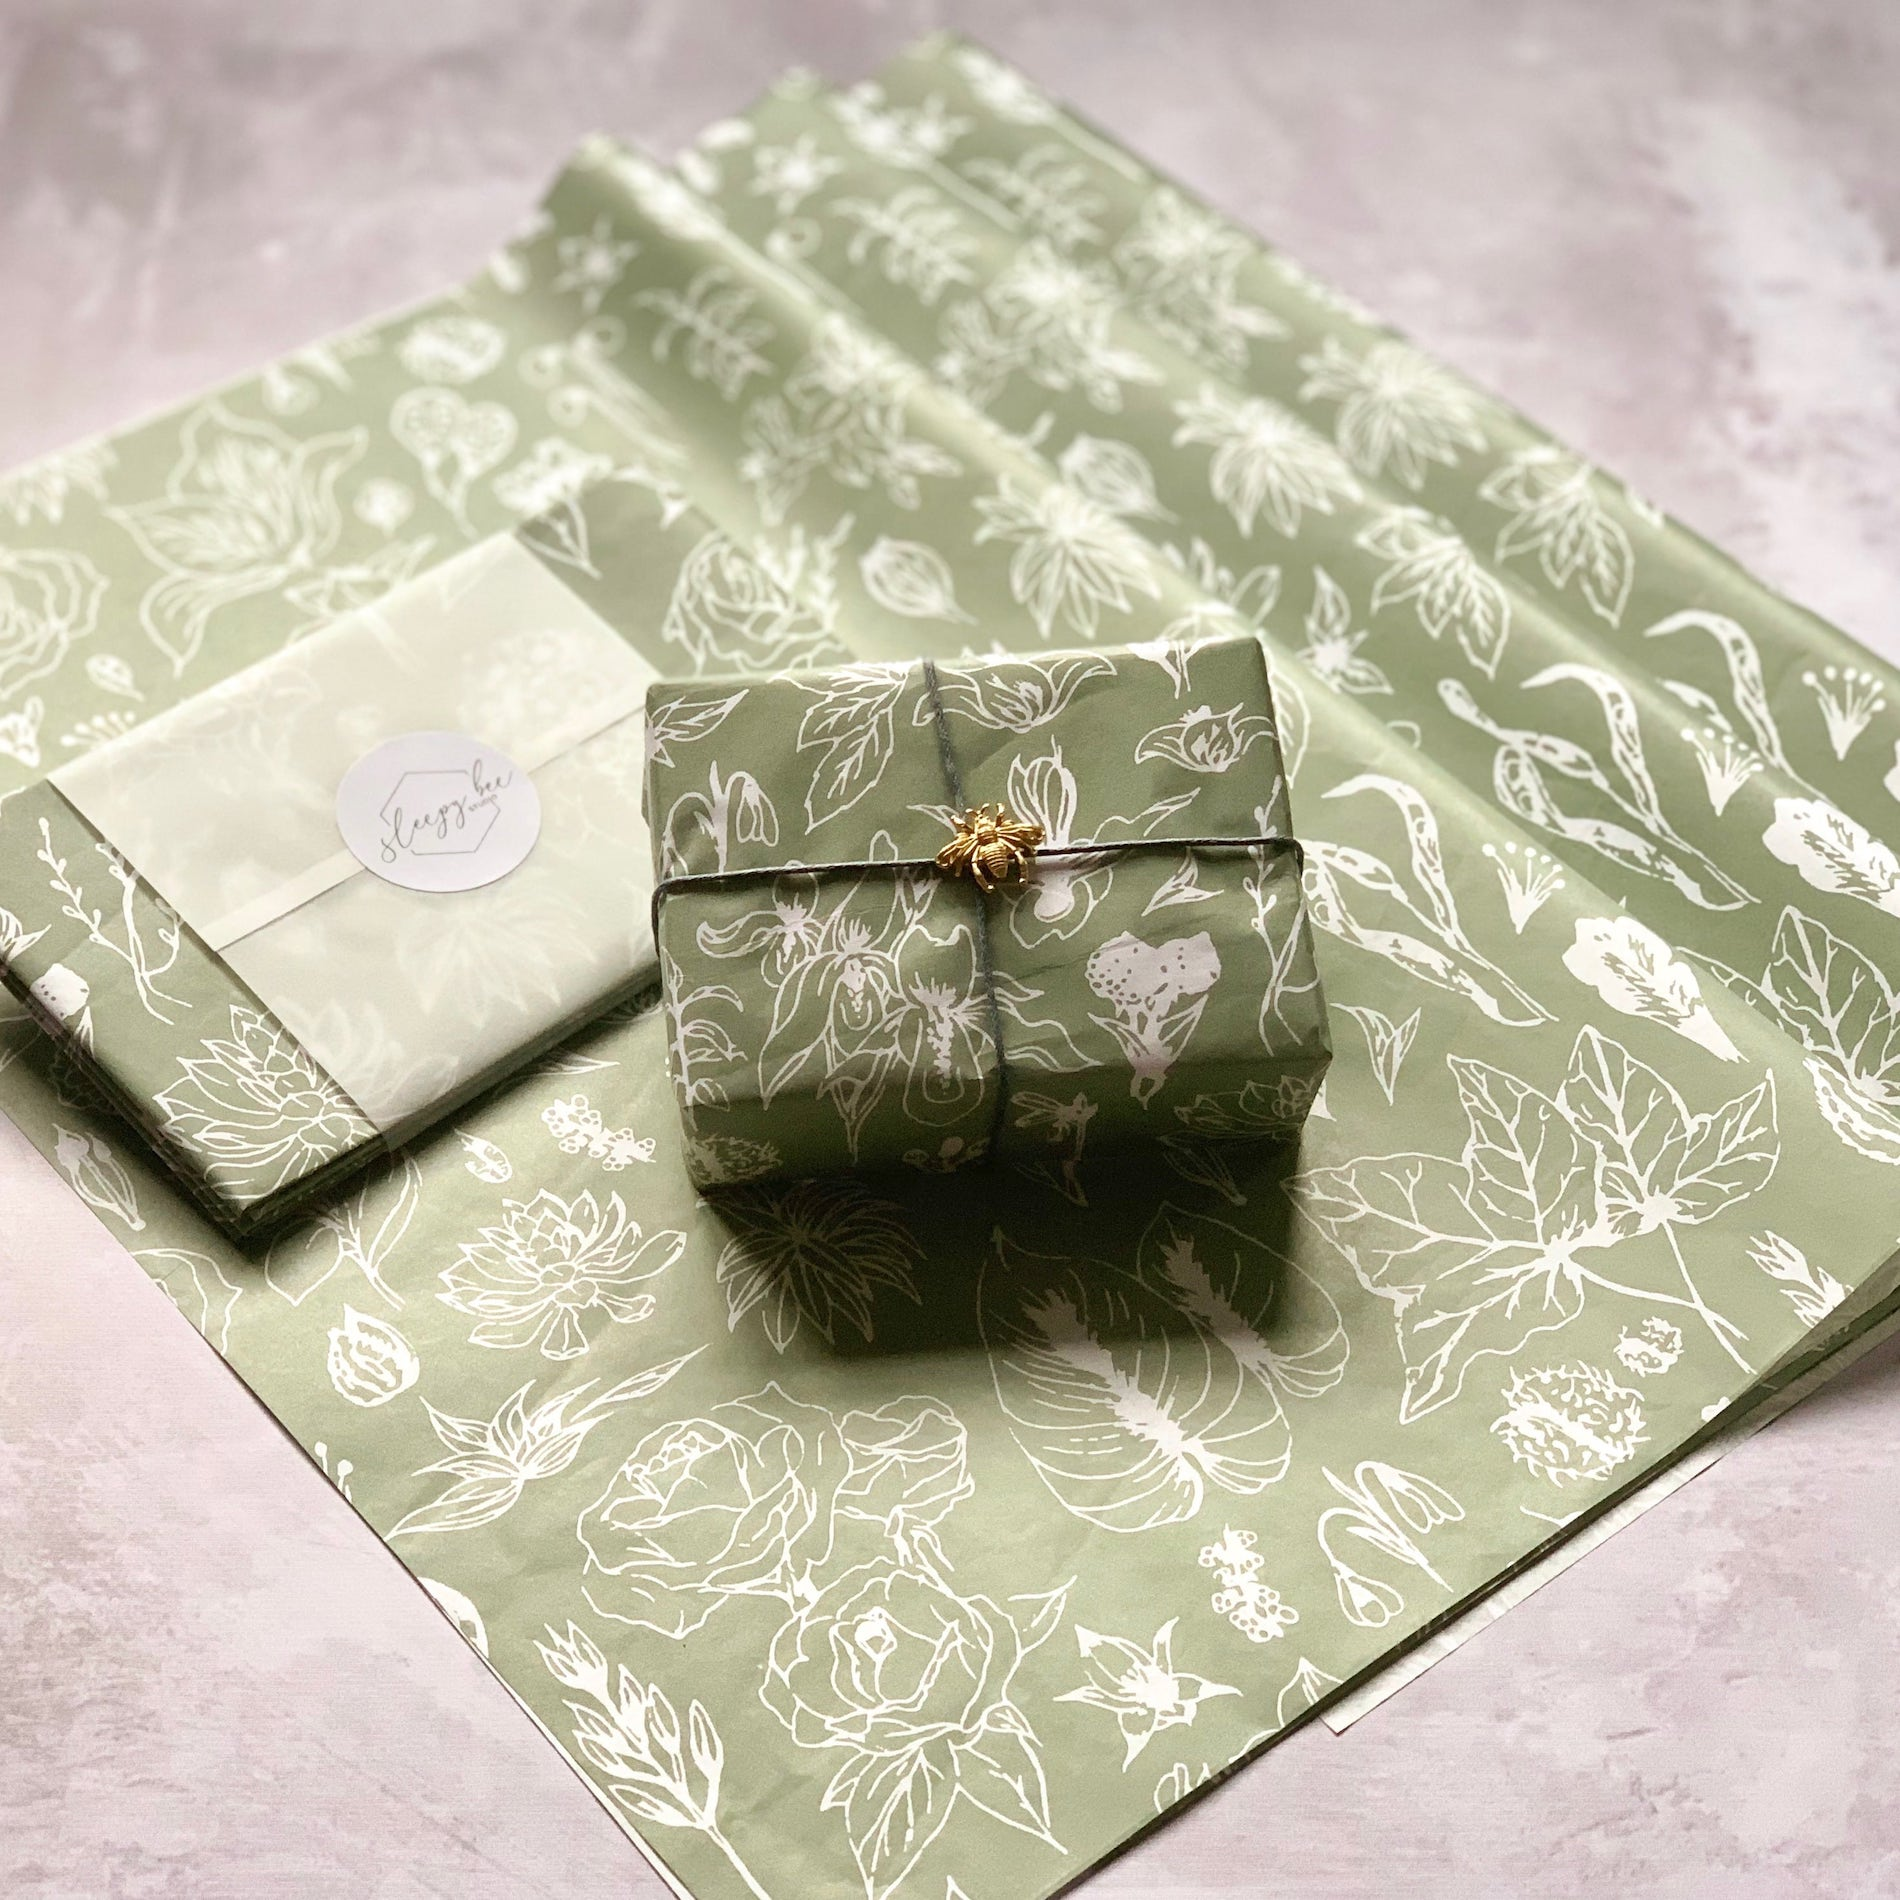 Sleepy Bee Studio Botanical custom tissue paper design